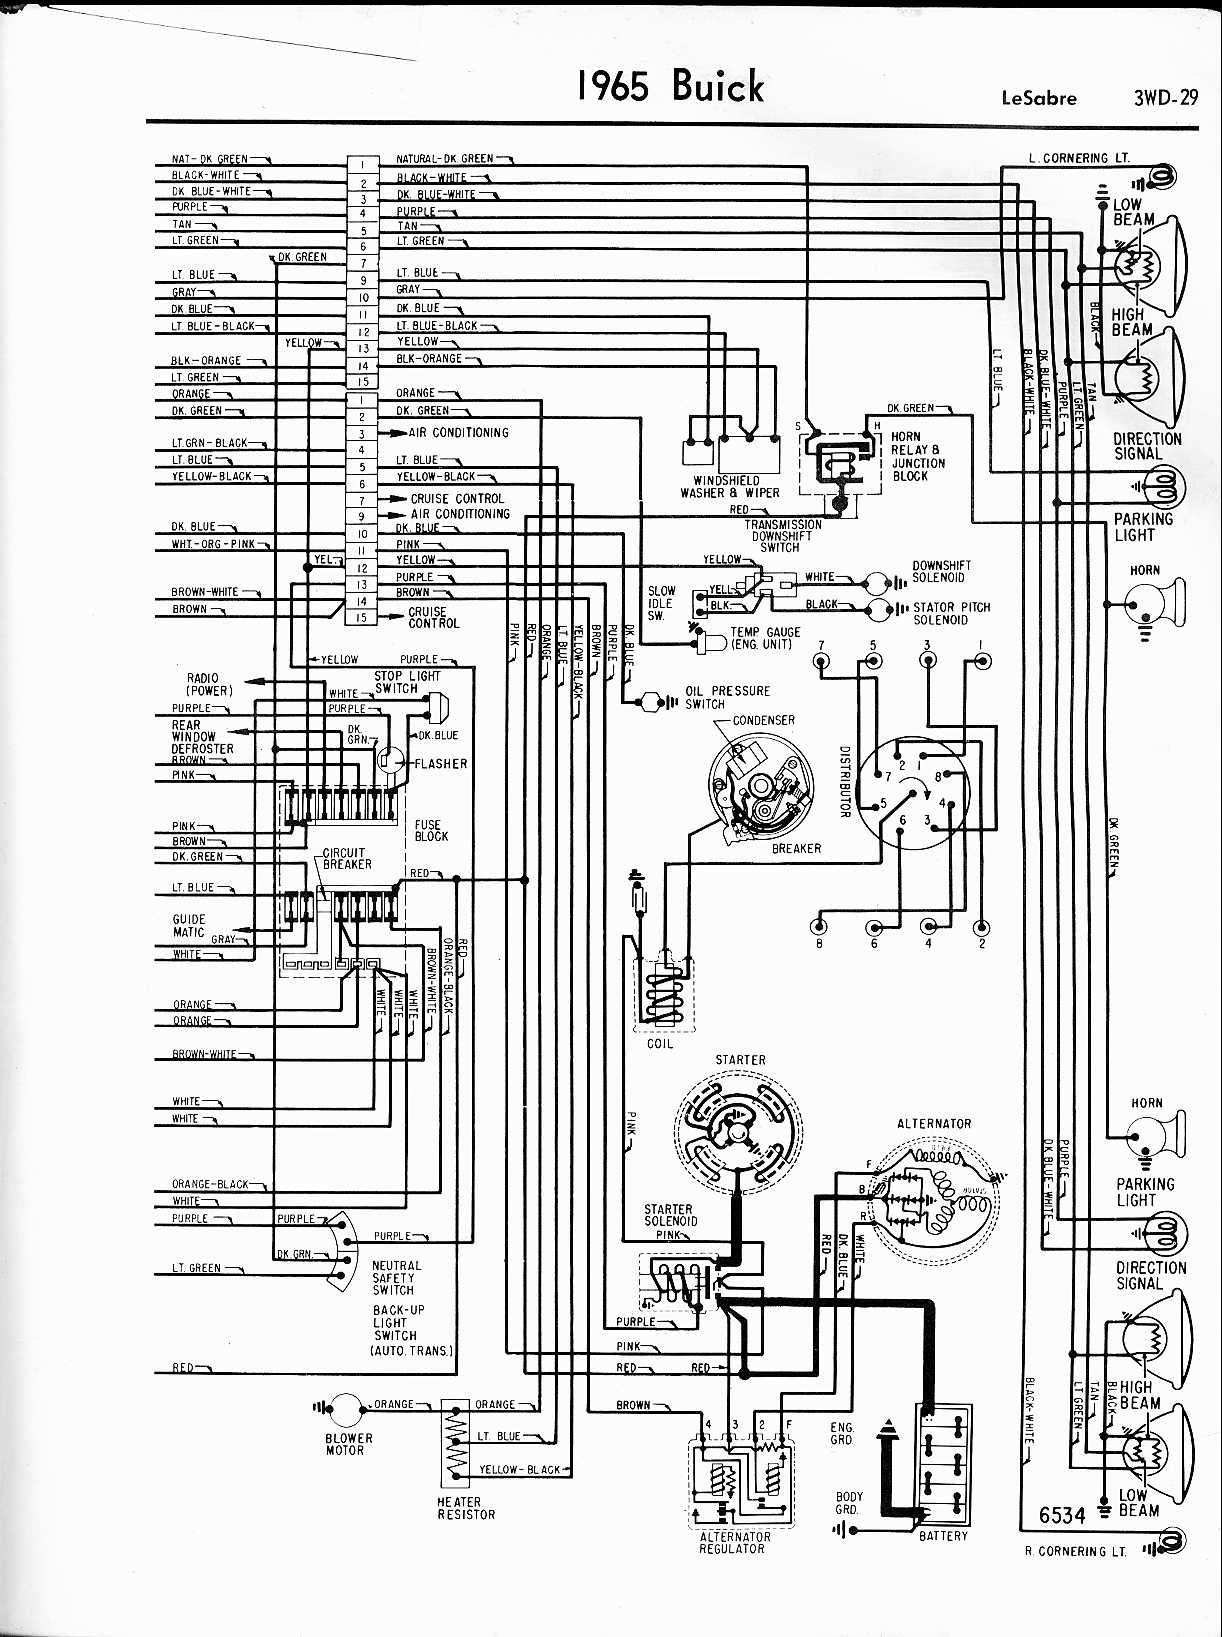 Back Of Electric Plug Diagram